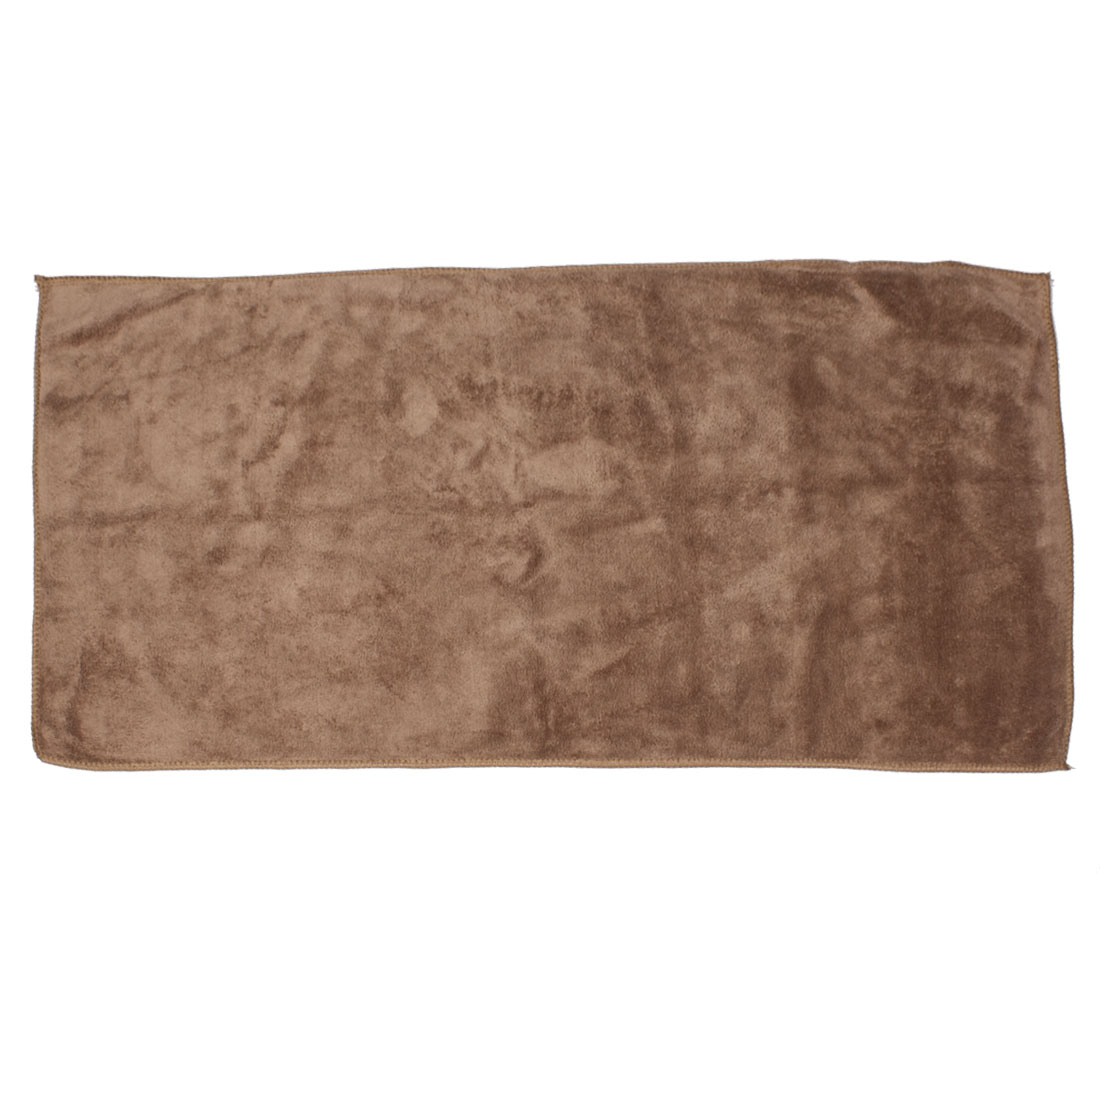 "Coffee Color Microfiber Car Washing Cleaning Clean Towel 26"" x 12.6"""